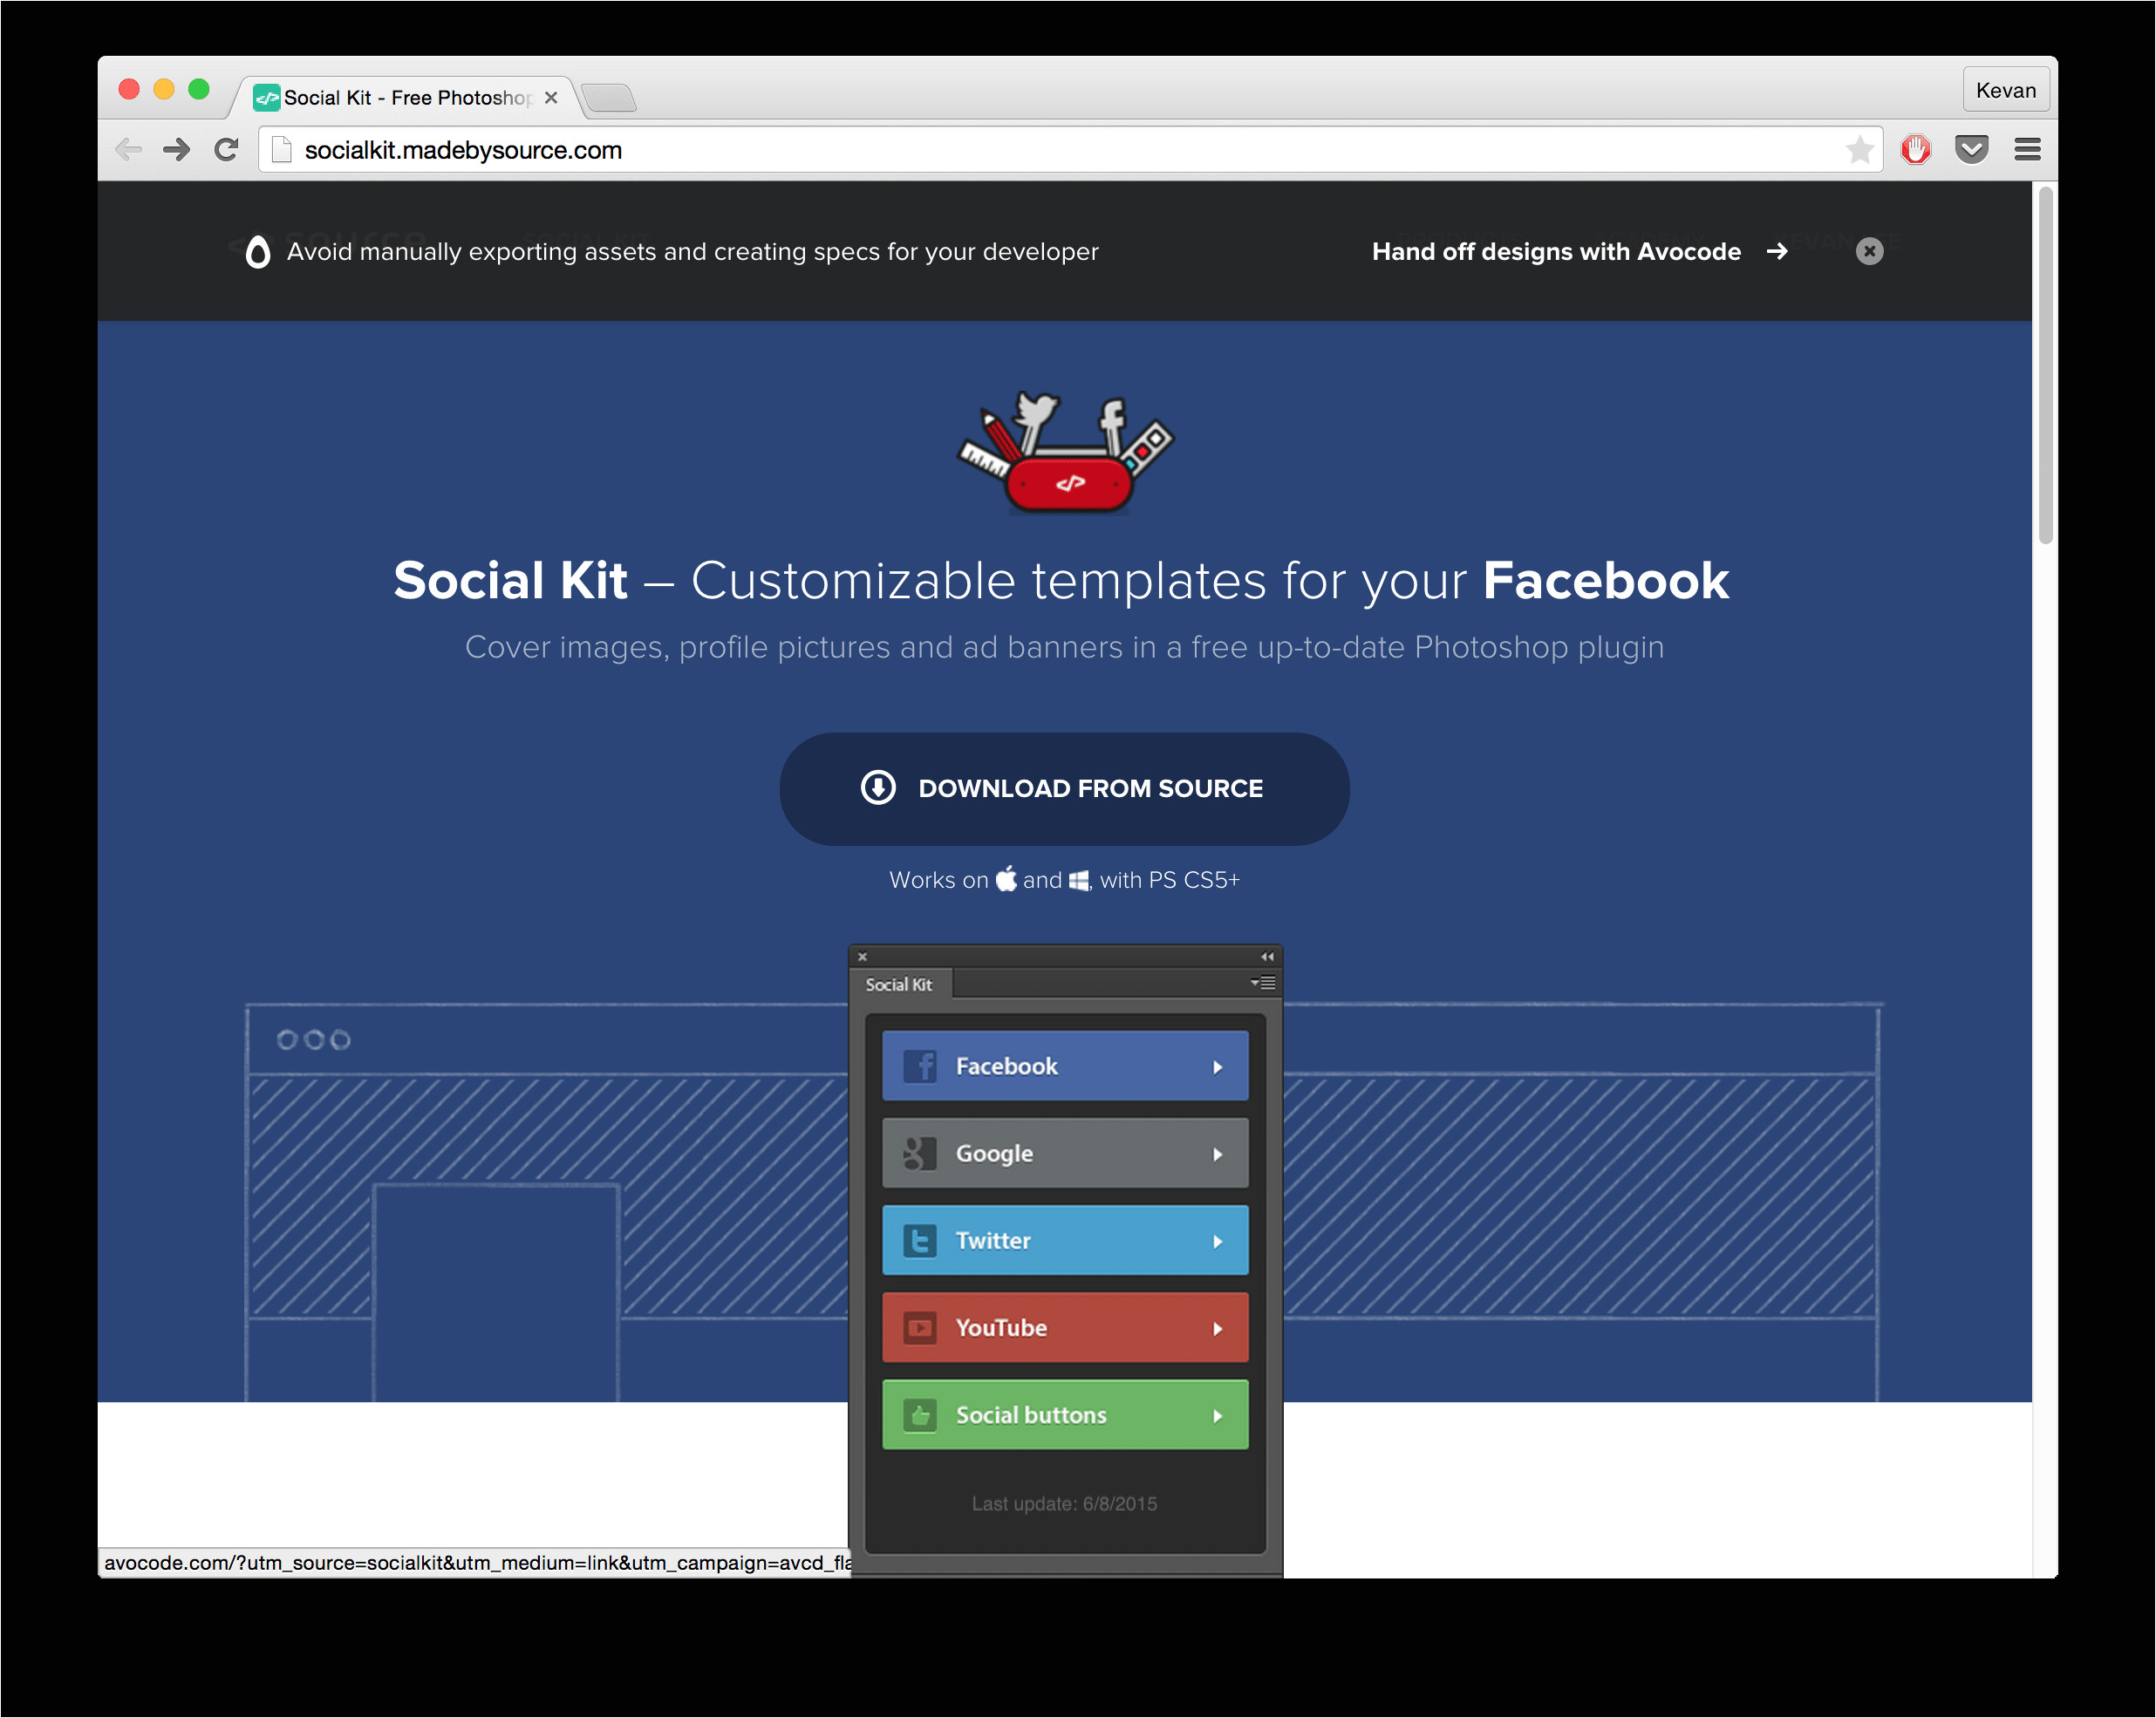 Social Network Profile Template 15 New social Media Templates to Save You even More Time